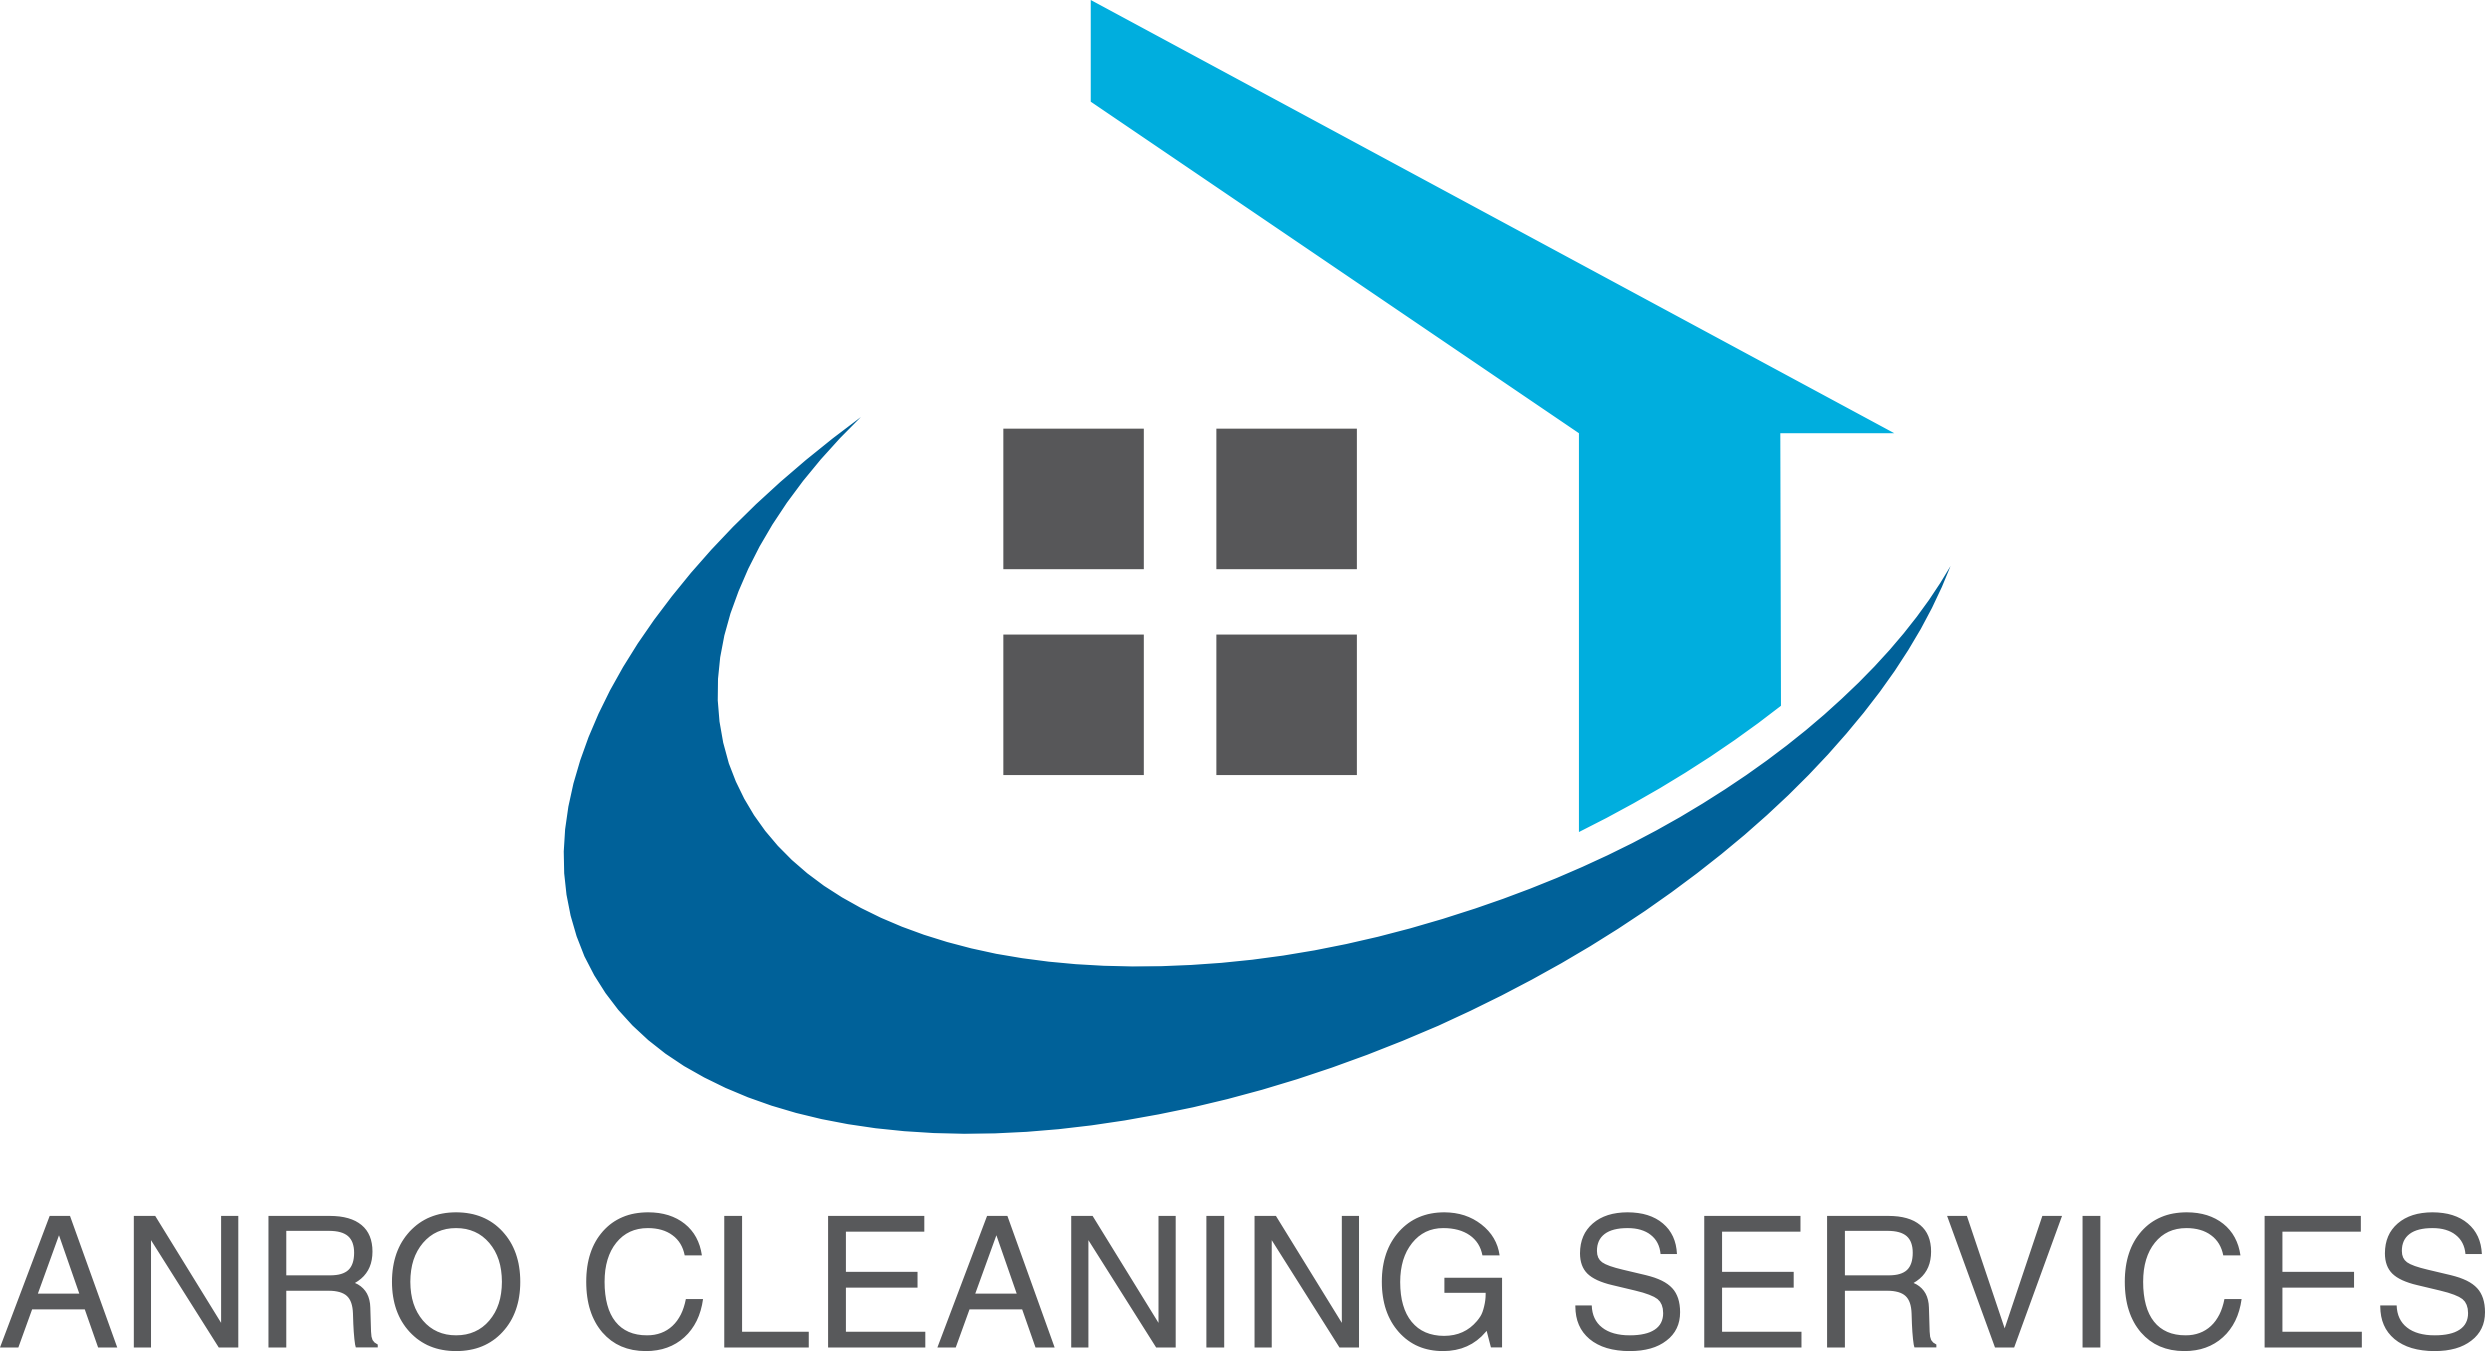 ANRO cleaning logo